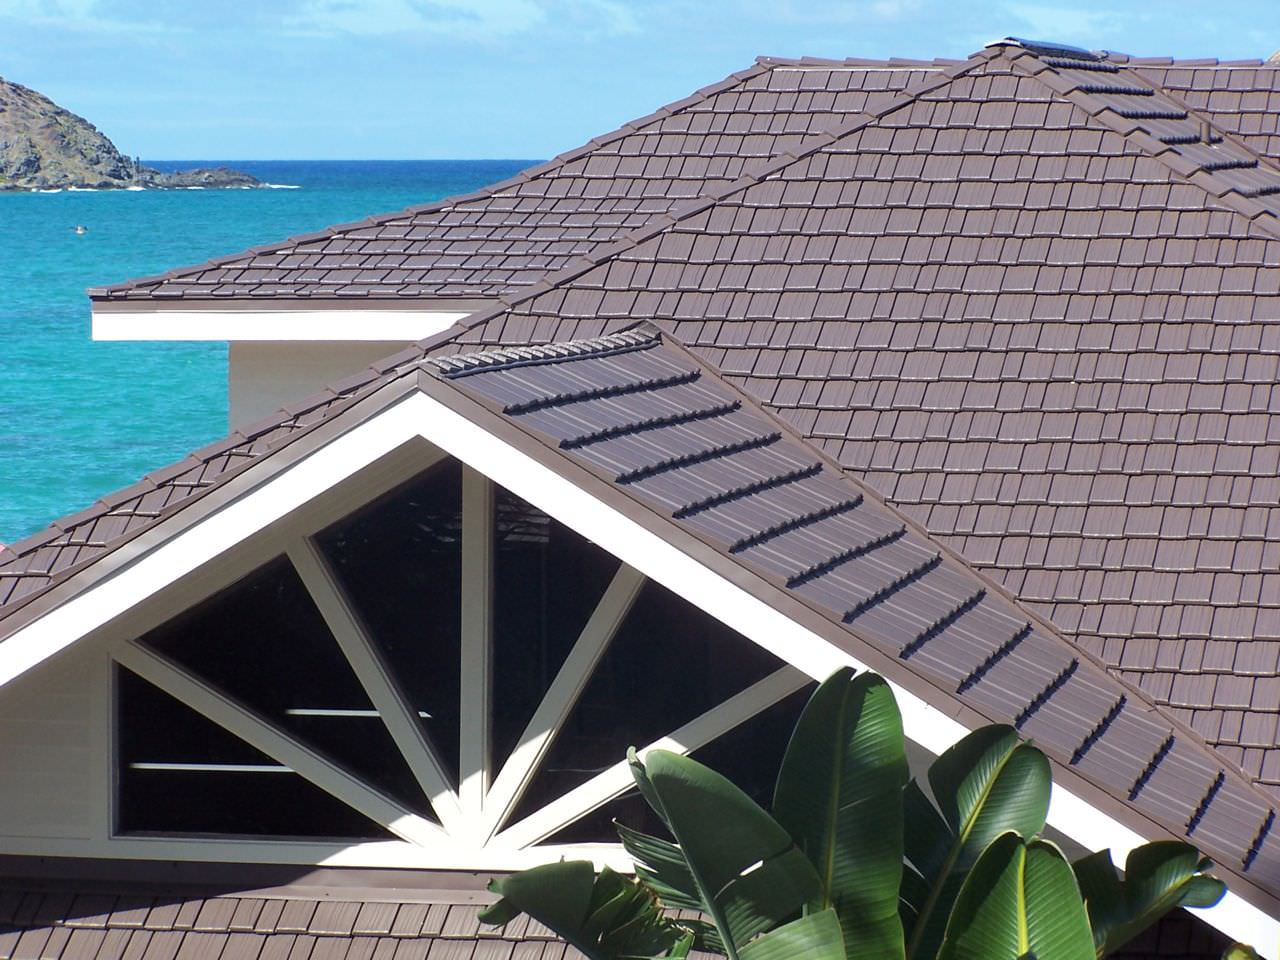 Are Shingle Or Metal Roofing Best For Warm Climates?